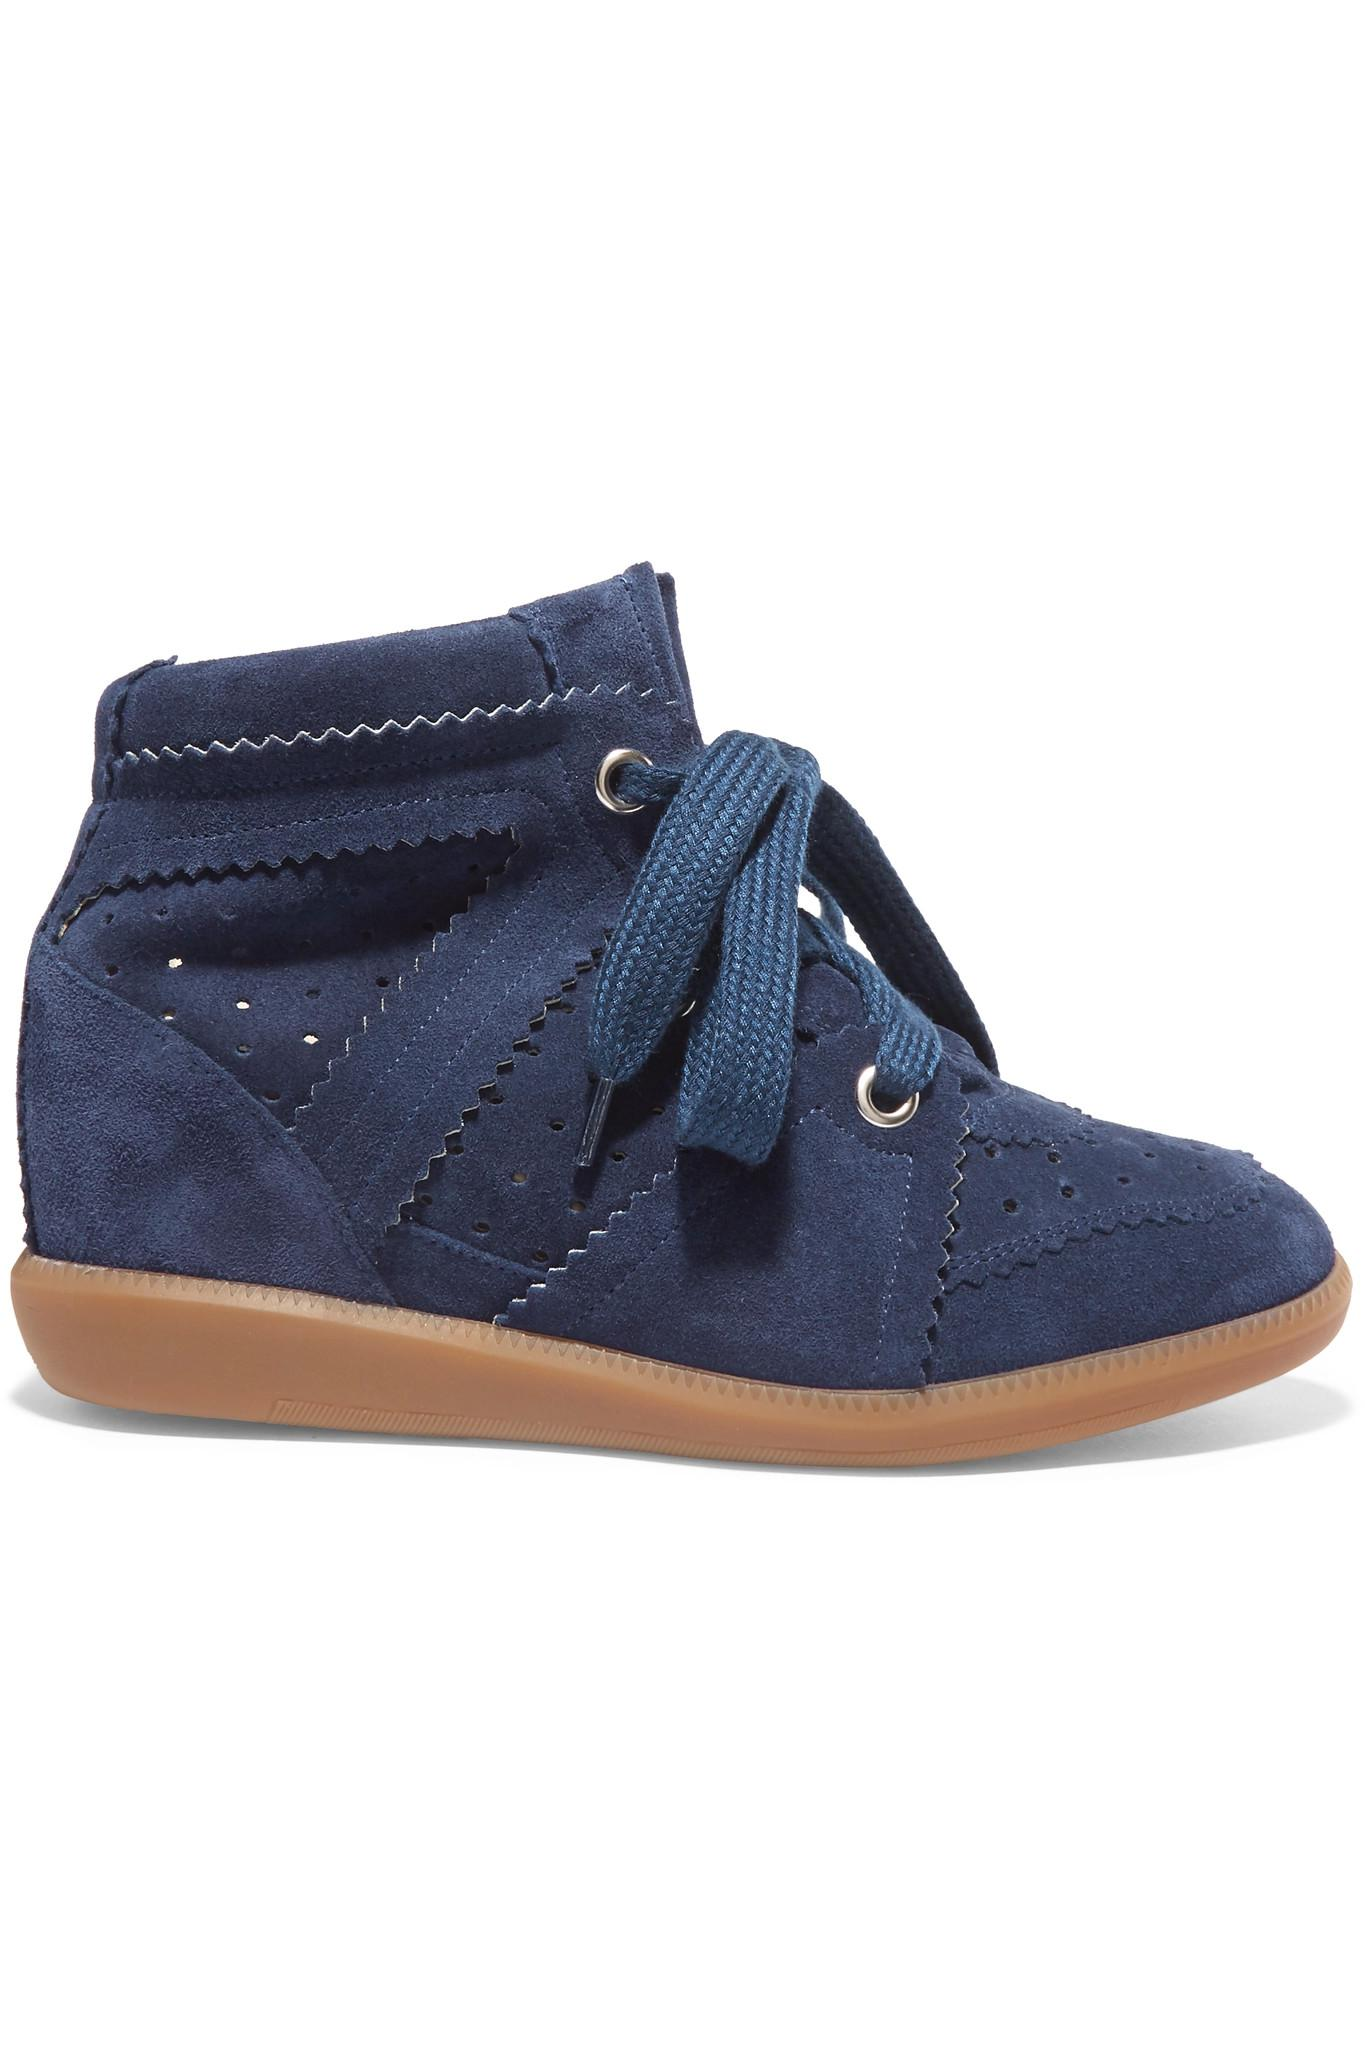 lyst isabel marant toile bobby suede wedge sneakers in blue. Black Bedroom Furniture Sets. Home Design Ideas